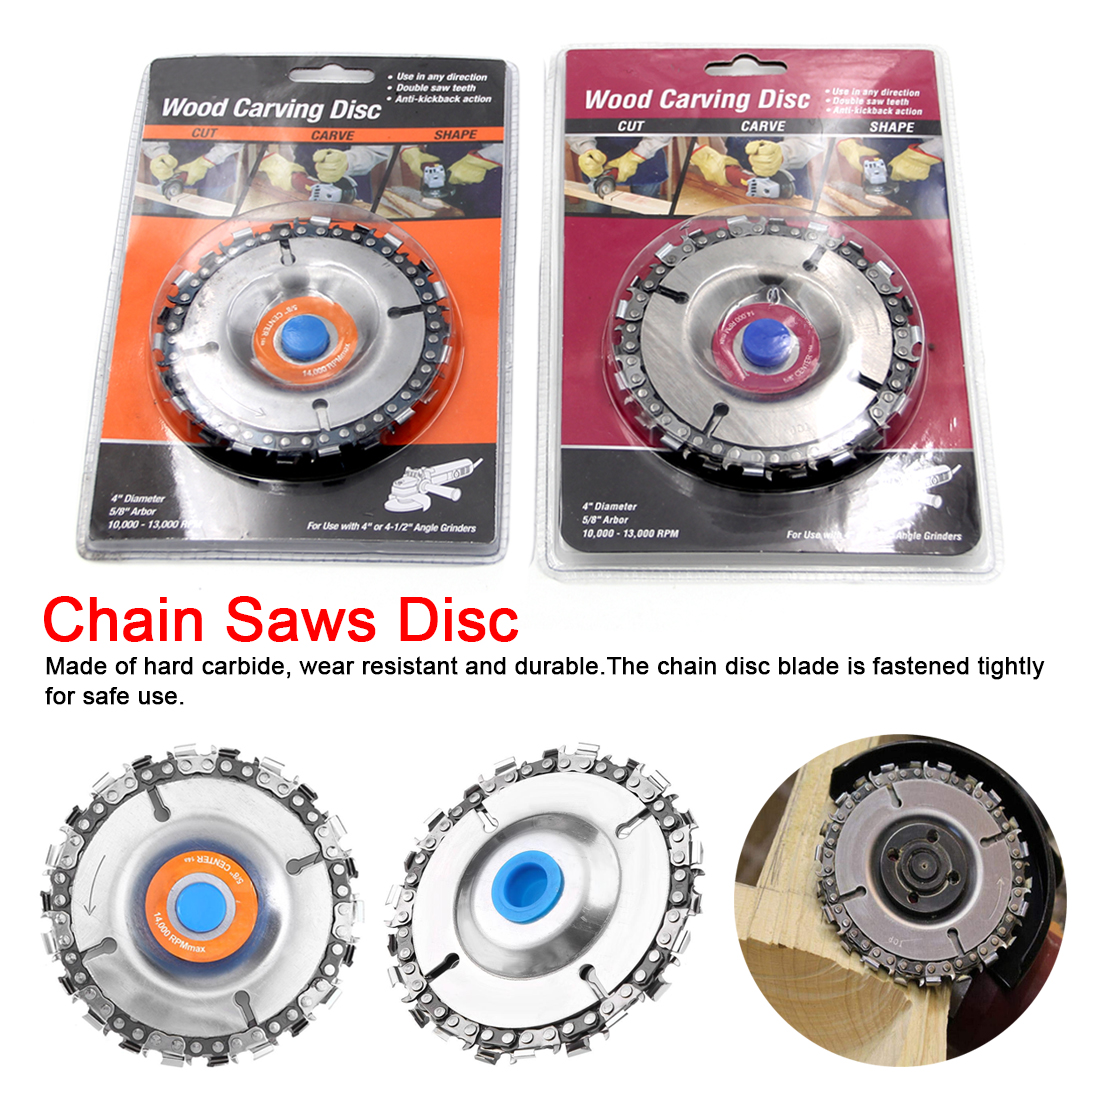 4 Inch 22 Teeth Grinder Chain Disc Cutting Disc 16mm Arbor Woodworking Carving Disc For 100/115 Angle Grinder /Circular Saw